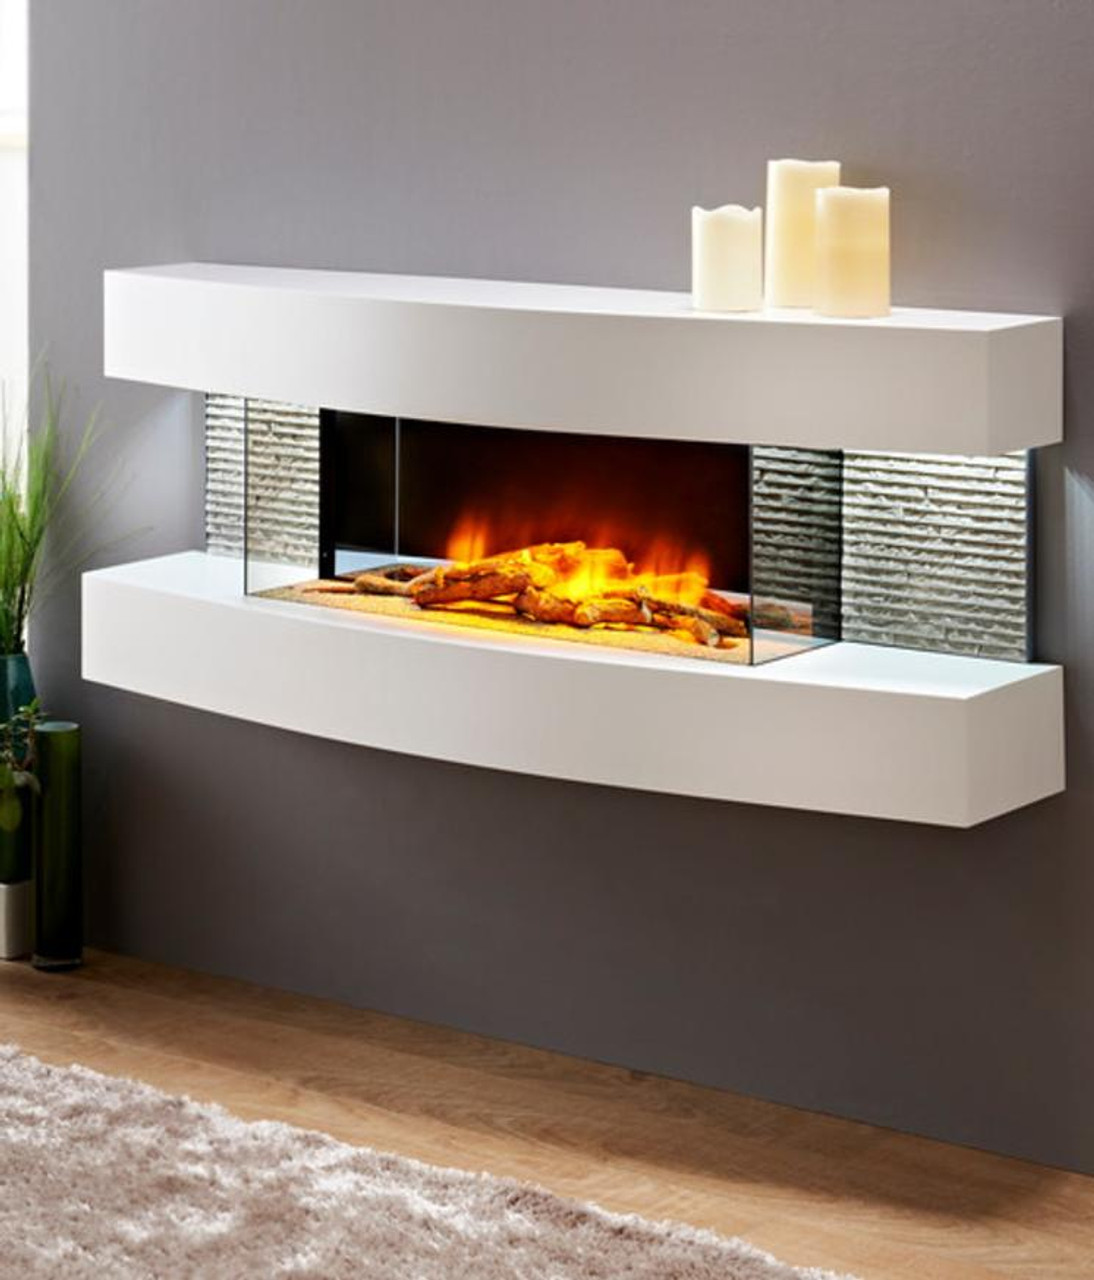 Miami Curve Wall Mounted Electric Fireplace